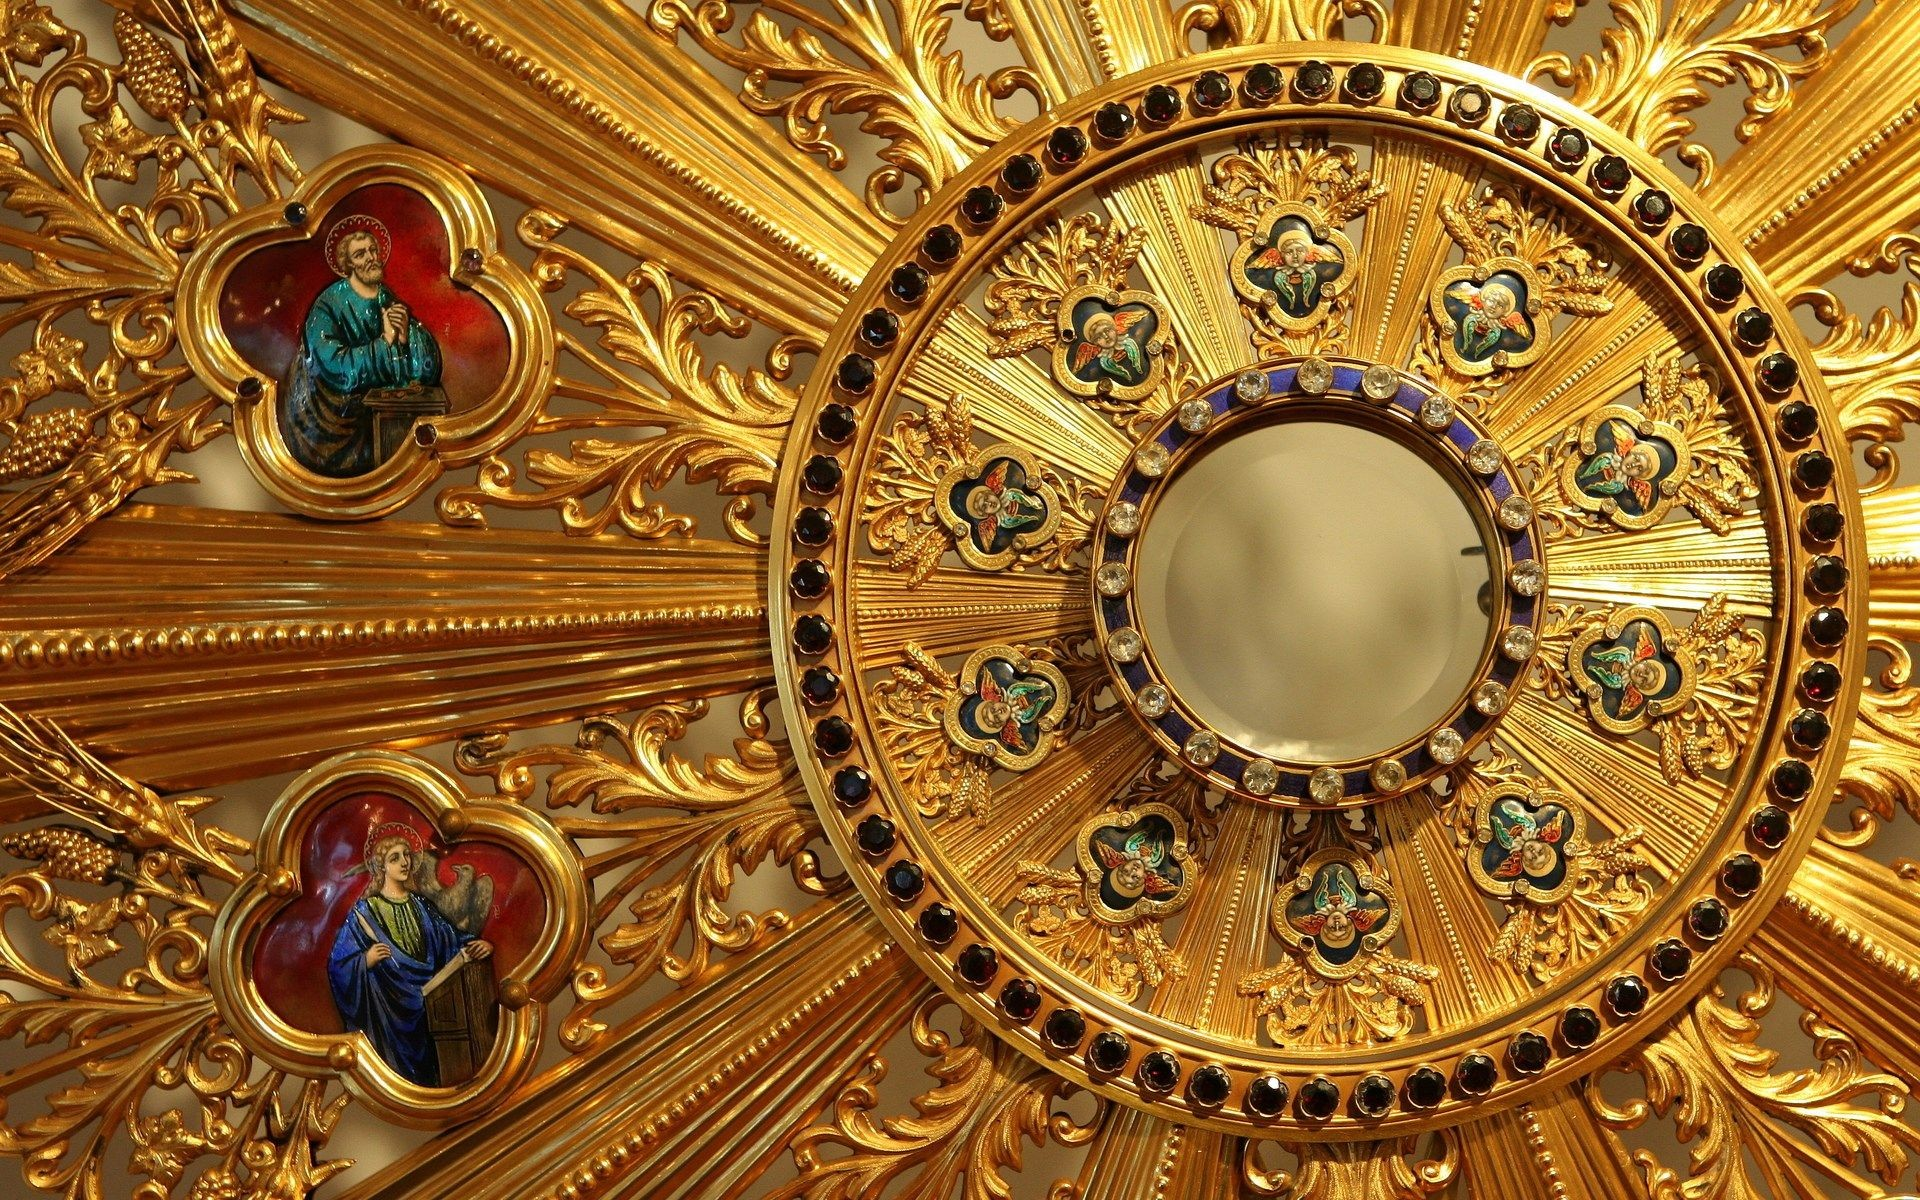 Res: 1920x1200, catholic wallpaper hd backgrounds images,  (943 kB)